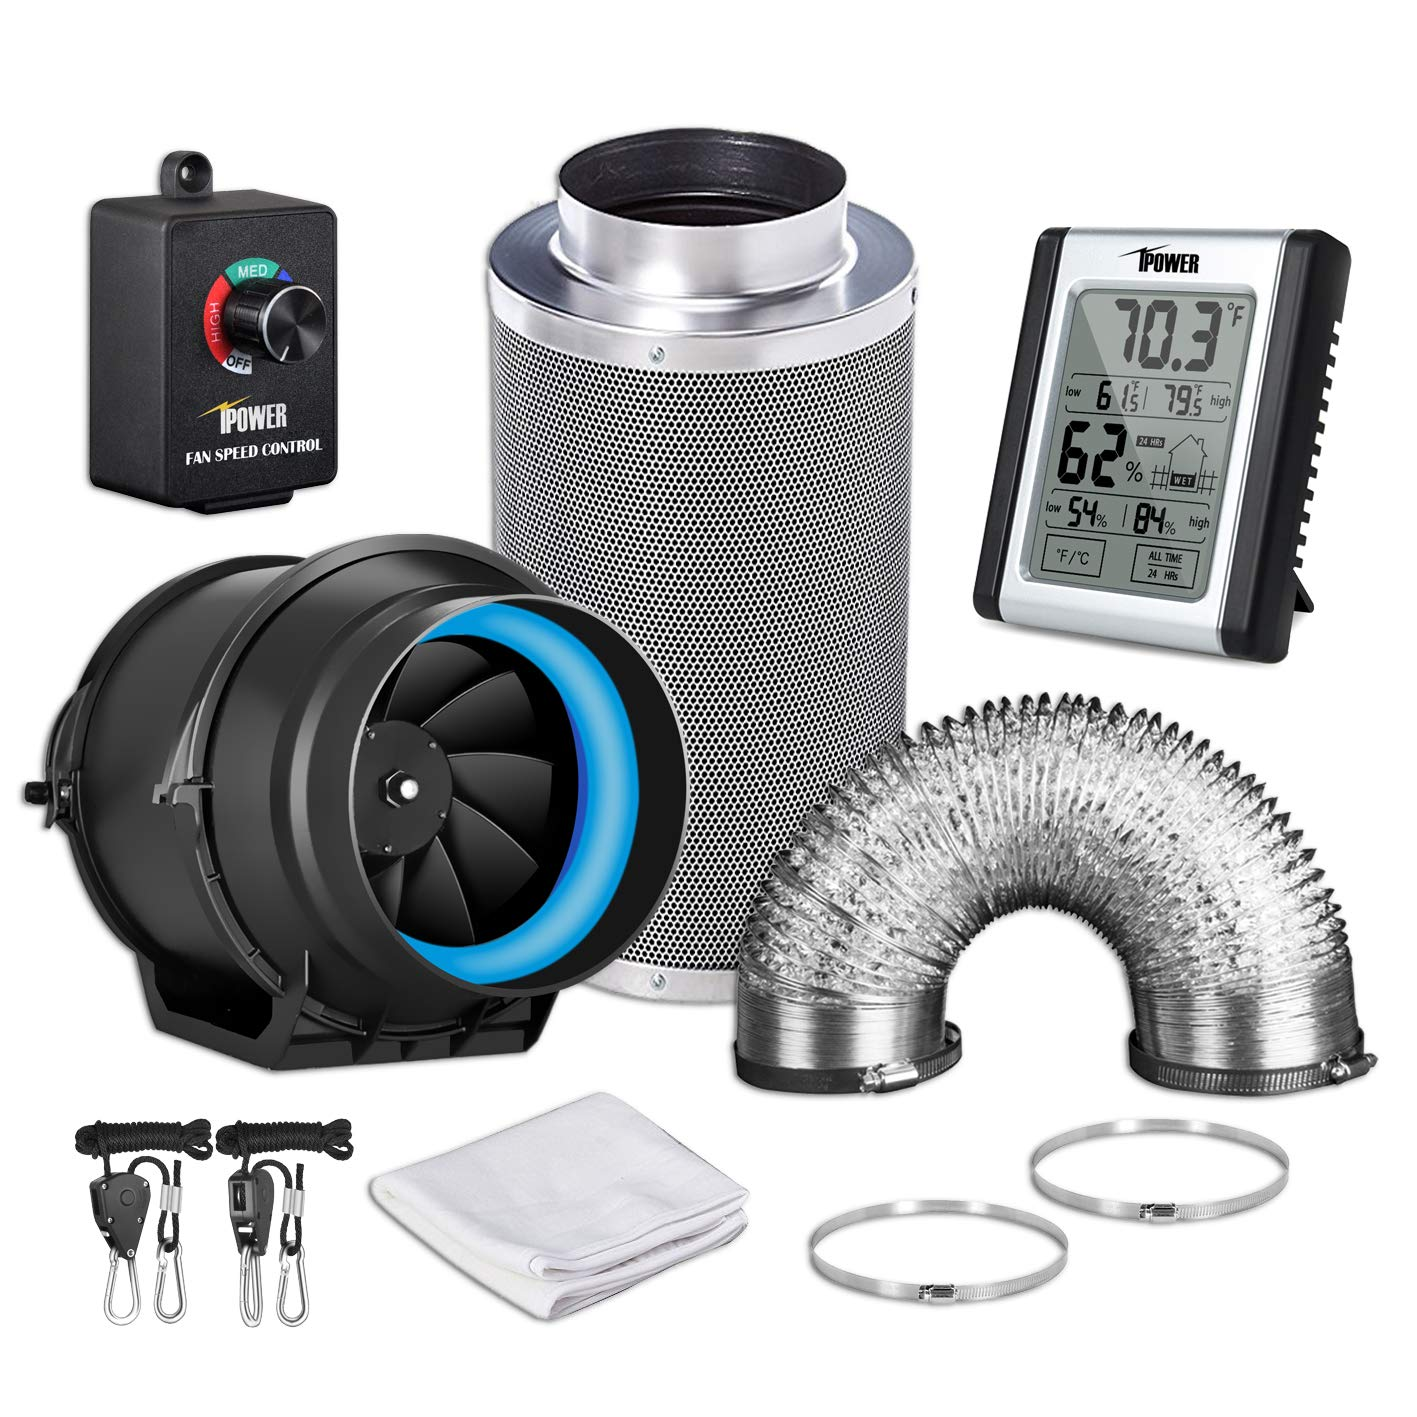 iPower GLFANXEXPSET6D8CHUMD 6 Inch 350 CFM Inline Filter 8 Feet Ducting with Fan Speed Controller and Temperature Humidity Monitor and Grow Tent Ventilation, Black